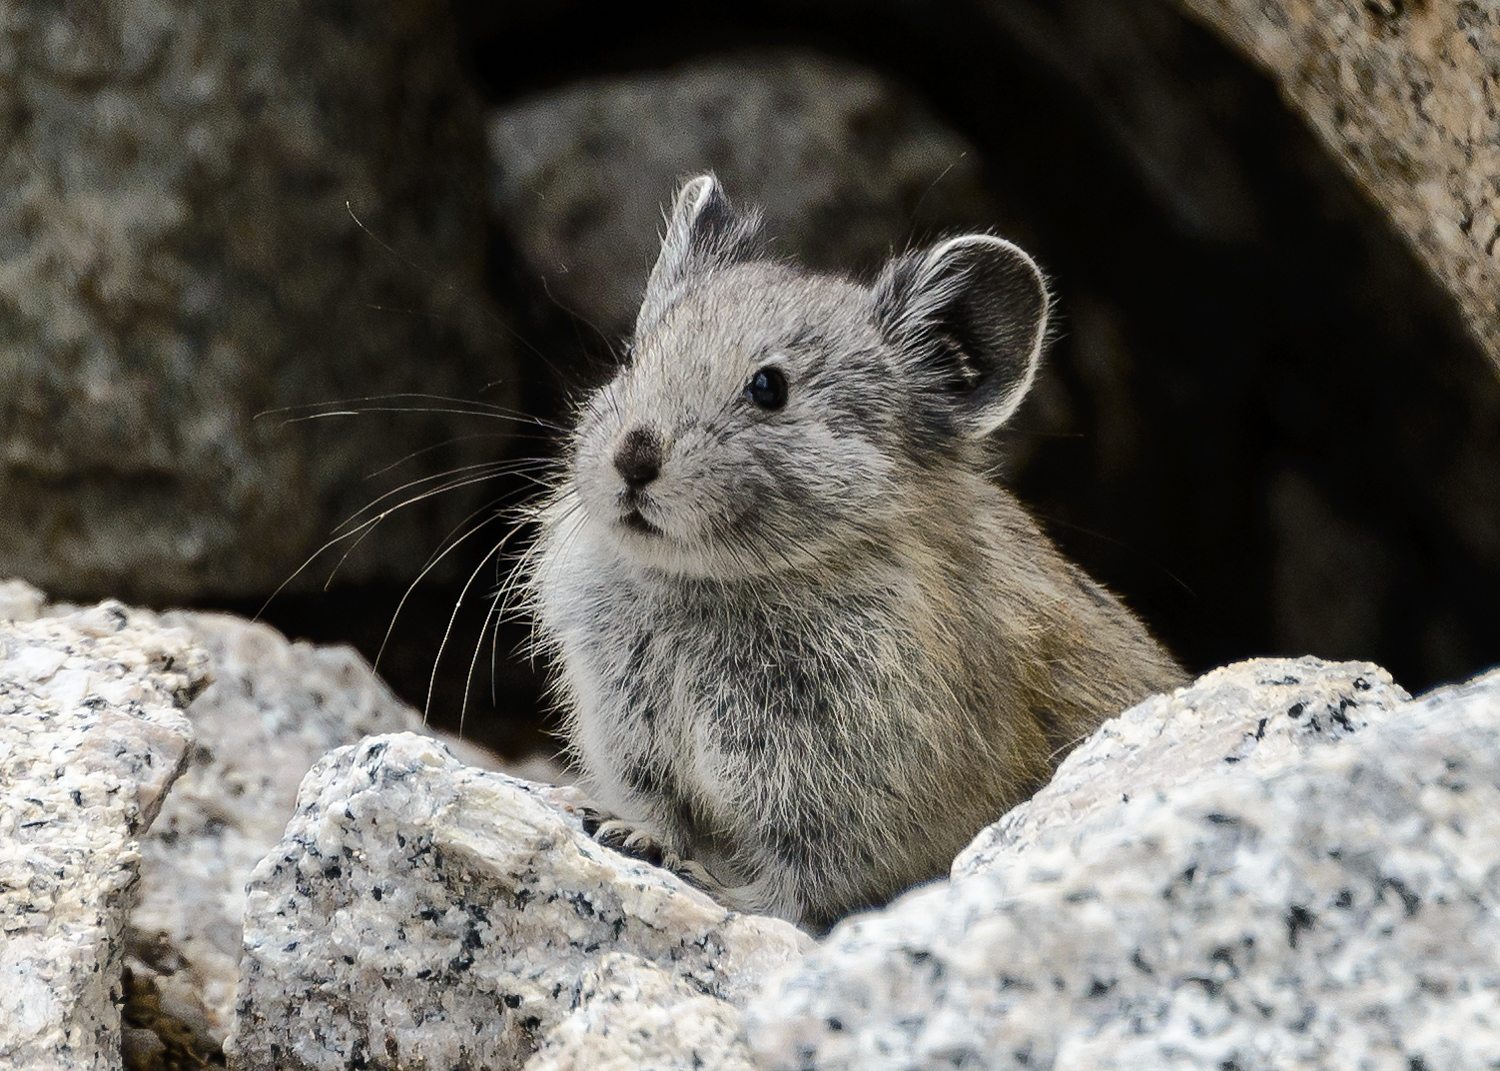 An American Pika in the Sierra Nevada. Photo by Marshal Hedin, via Flickr creative commons.